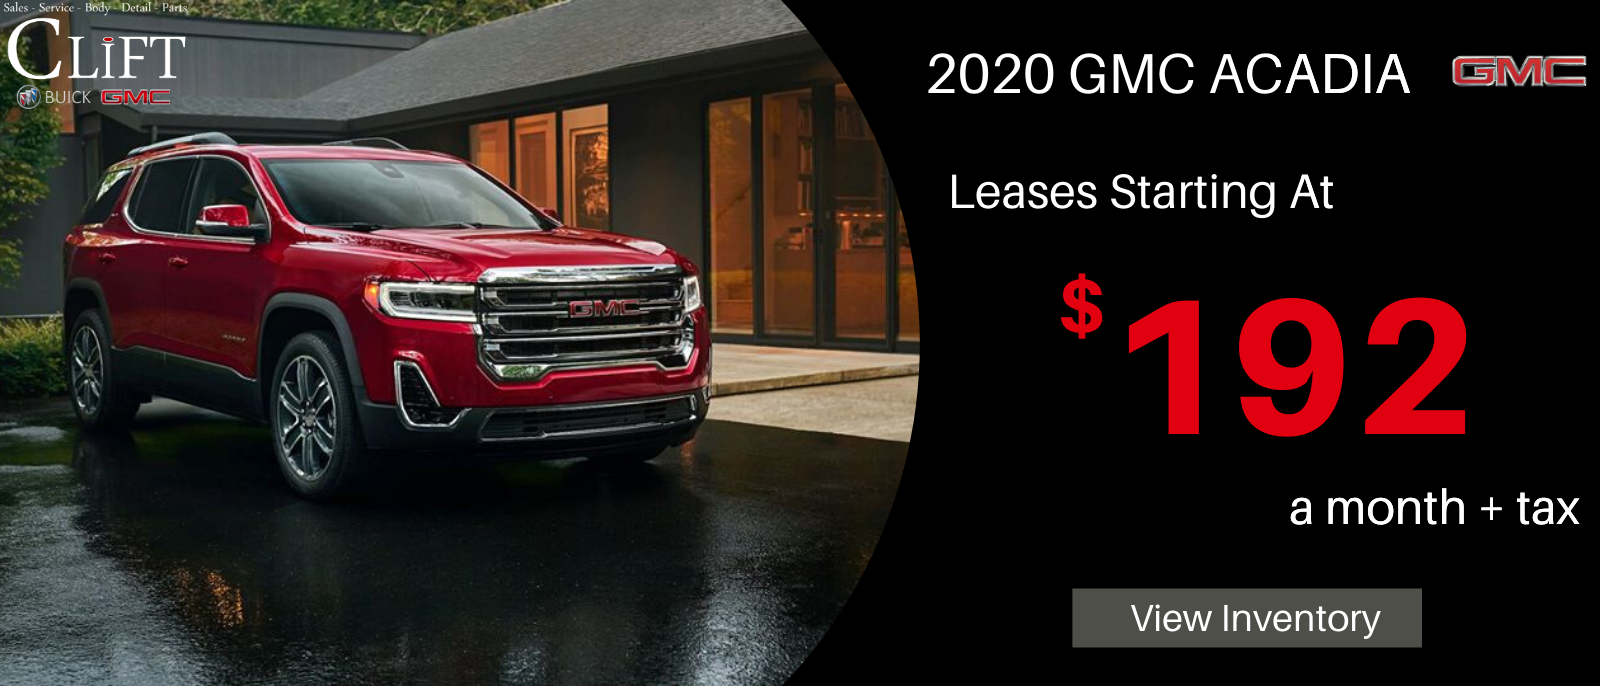 Lease 192 Month Or Save 8 579 Off Msrp In 2020 Gmc New Cars